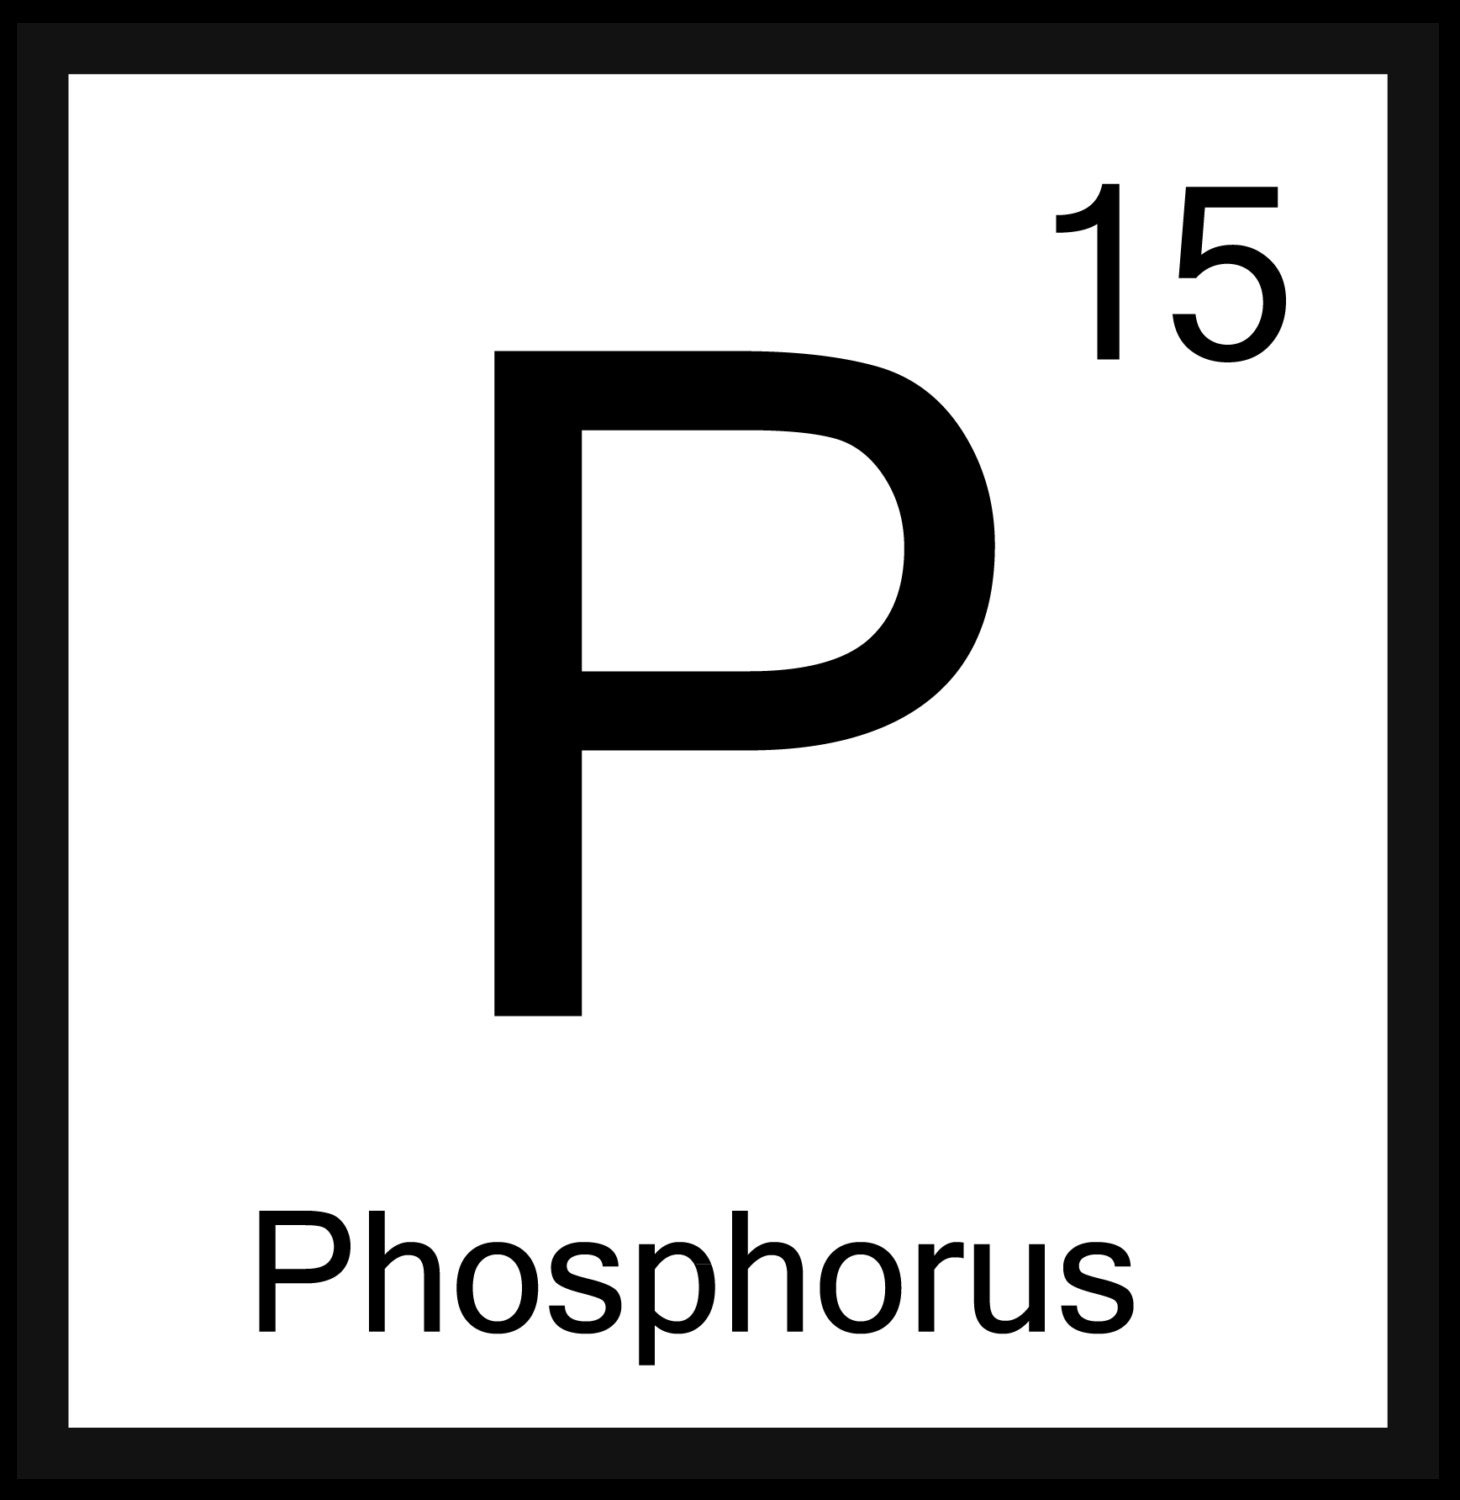 Science alphabet periodic table letters black and white 90 this is a digital file urtaz Image collections